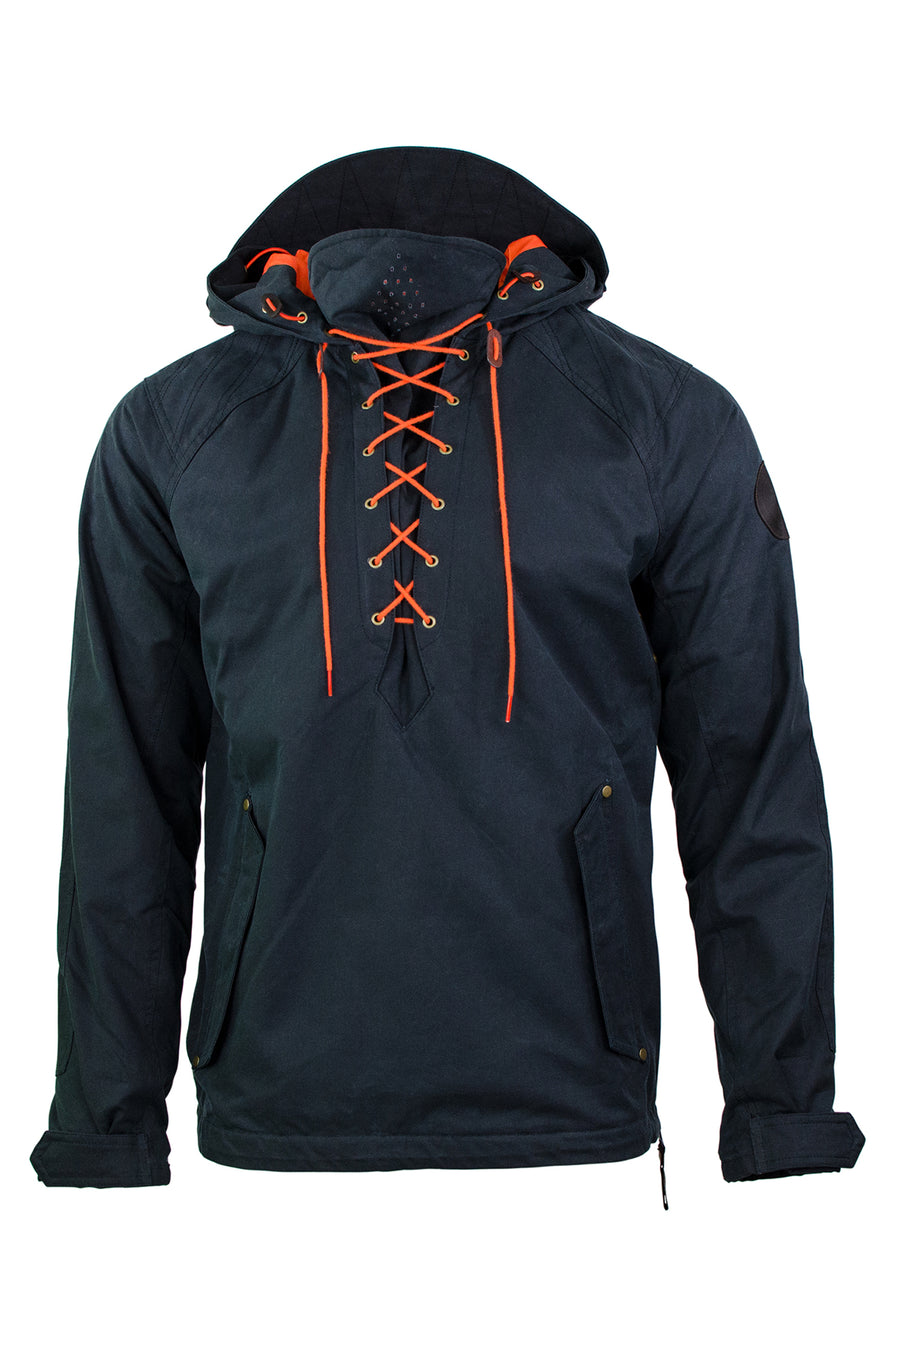 Alps & Meters M-Alpine Anorak Men's Jacket